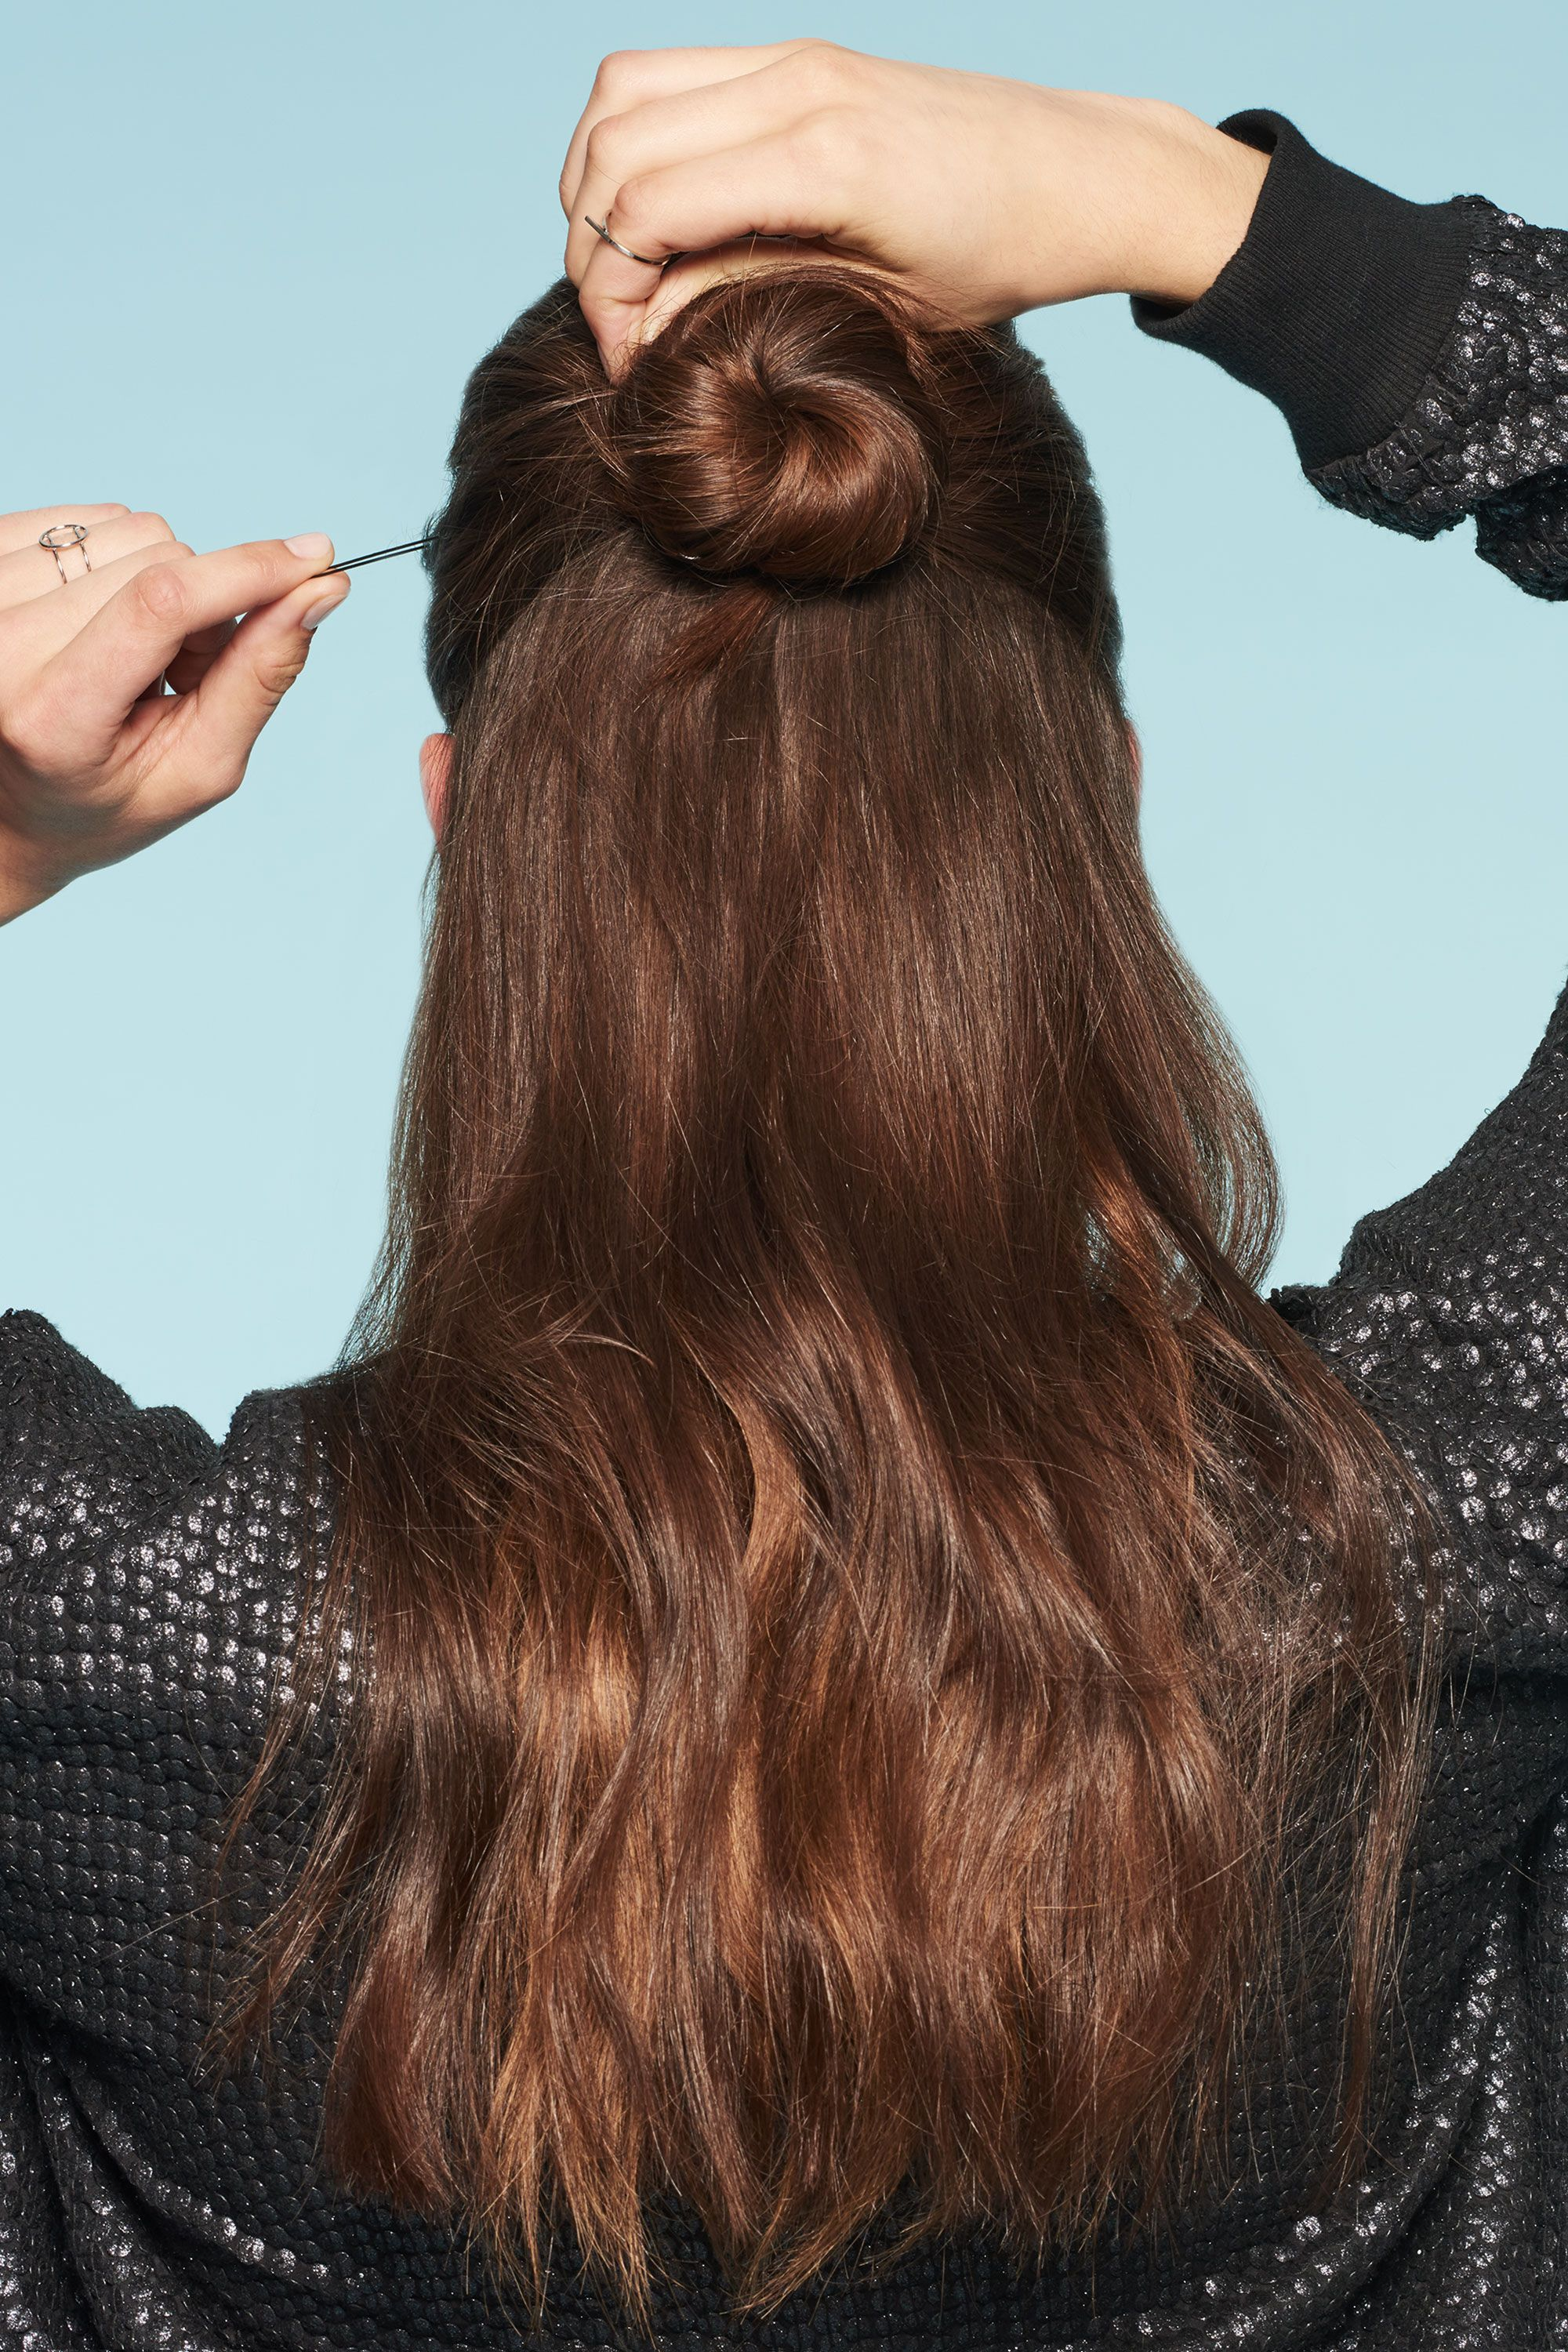 <p>Twist the ponytail and wrap it around&nbsp&#x3B;the elastic to create&nbsp&#x3B;a basic&nbsp&#x3B;bun. Secure the ends with bobby pins,&nbsp&#x3B;crisscrossing them for budge-free hold.</p>